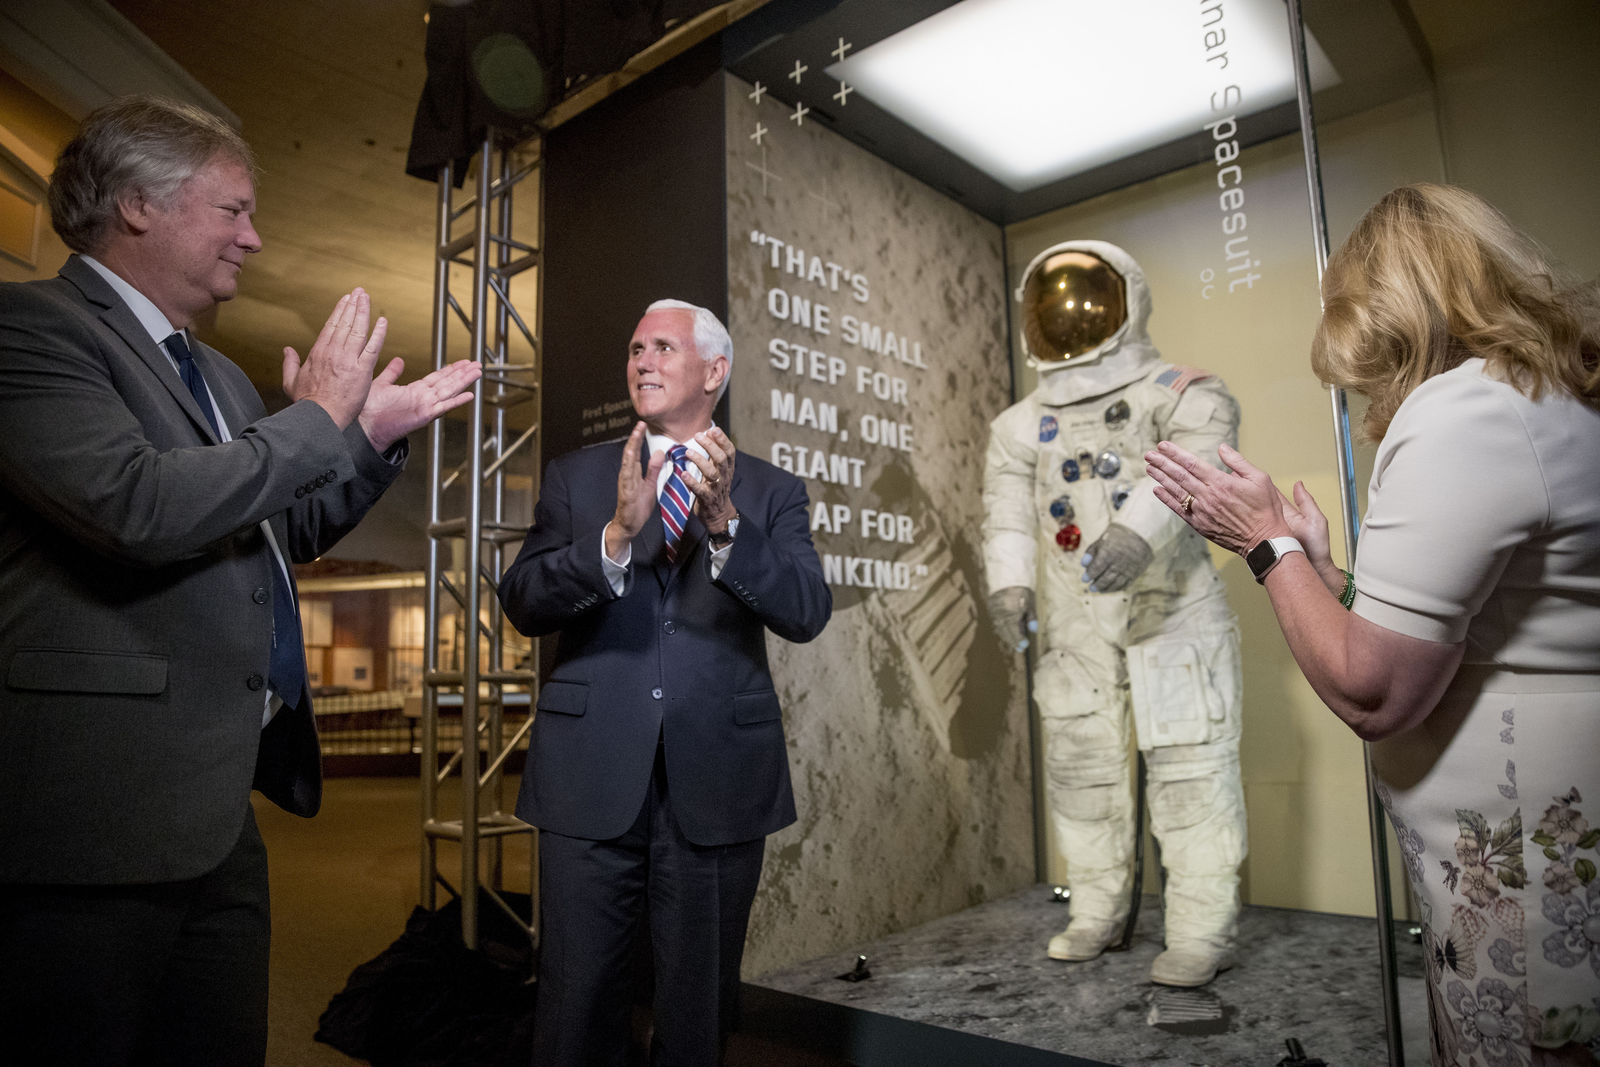 From left, Rick Armstrong, the son of Neil Armstrong, Vice President Mike Pence, and Smithsonian's National Air and Space Museum Director Ellen Stofan, unveil Neil Armstrong's Apollo 11 spacesuit at the Smithsonian's National Air and Space Museum on the National Mall in Washington, Tuesday, July 16, 2019. (AP Photo/Andrew Harnik, Pool)